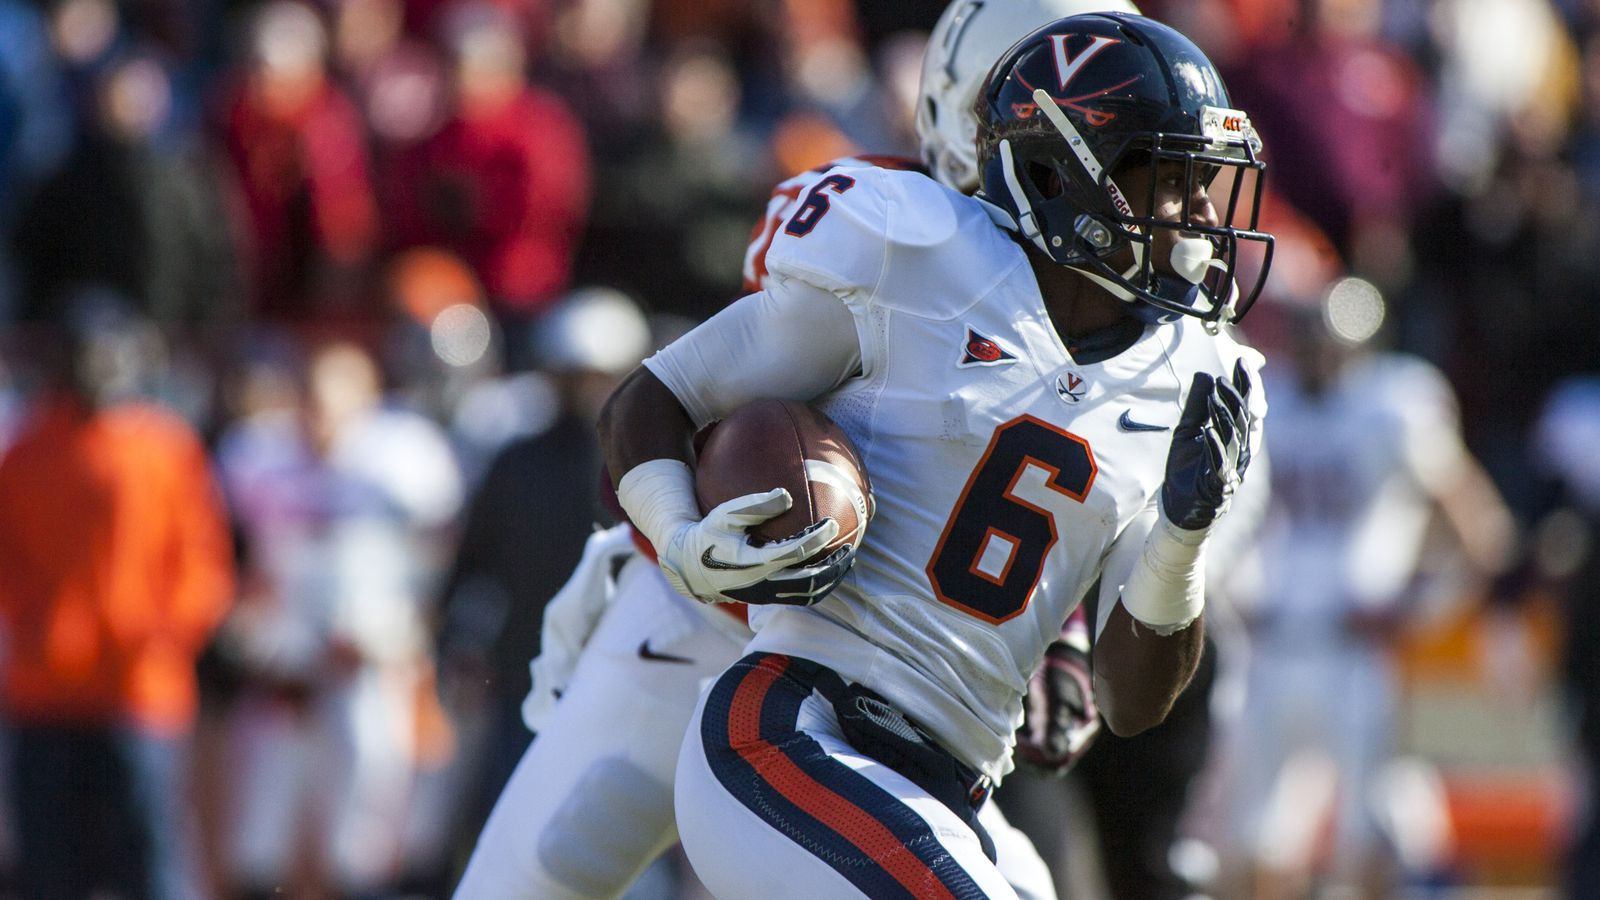 byu football adds two more games with virginia vanquish